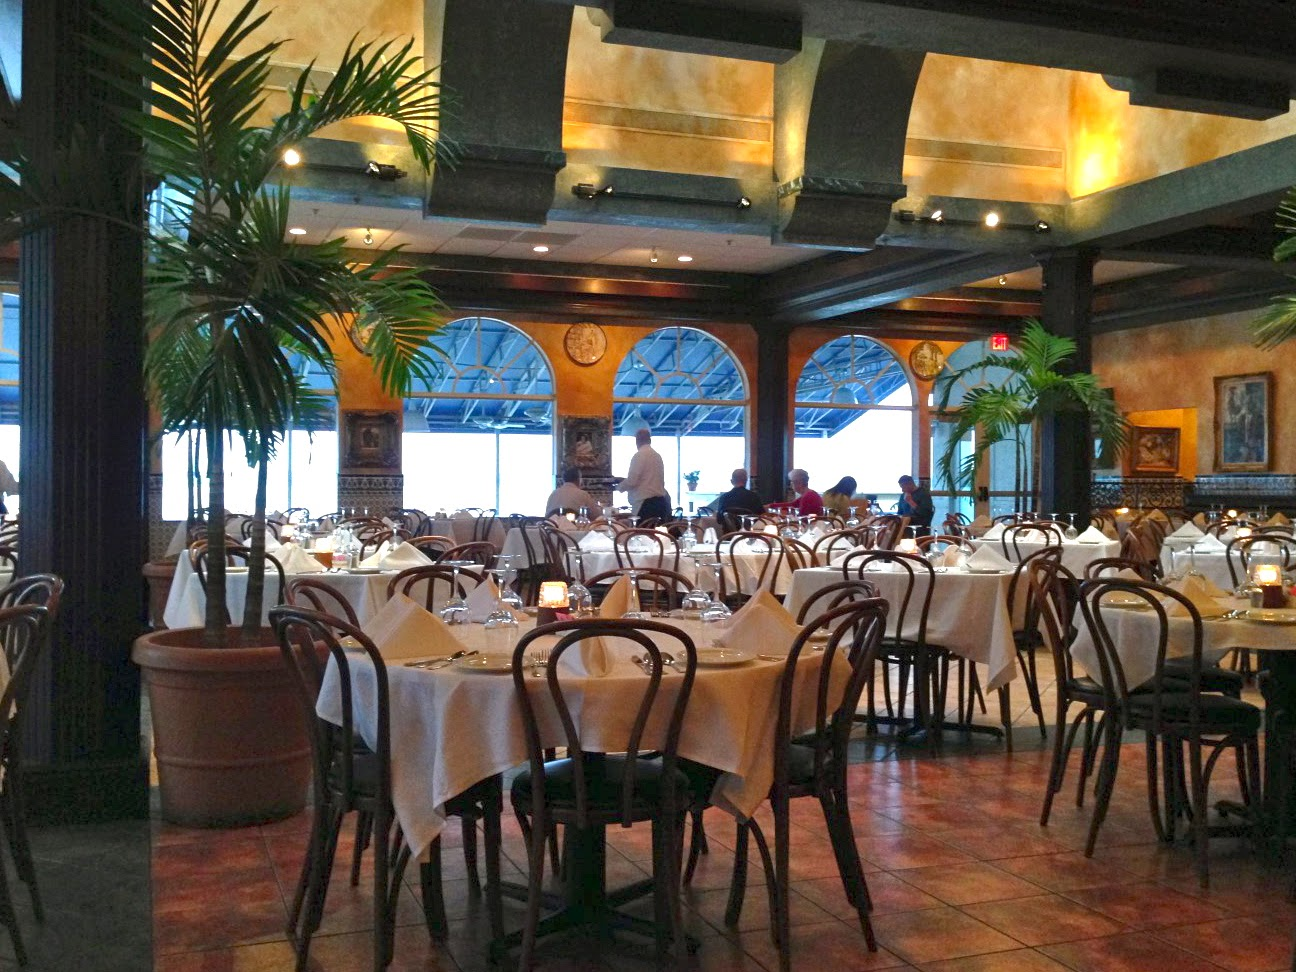 Inside the Columbia Restaurant in Clearwater, Florida